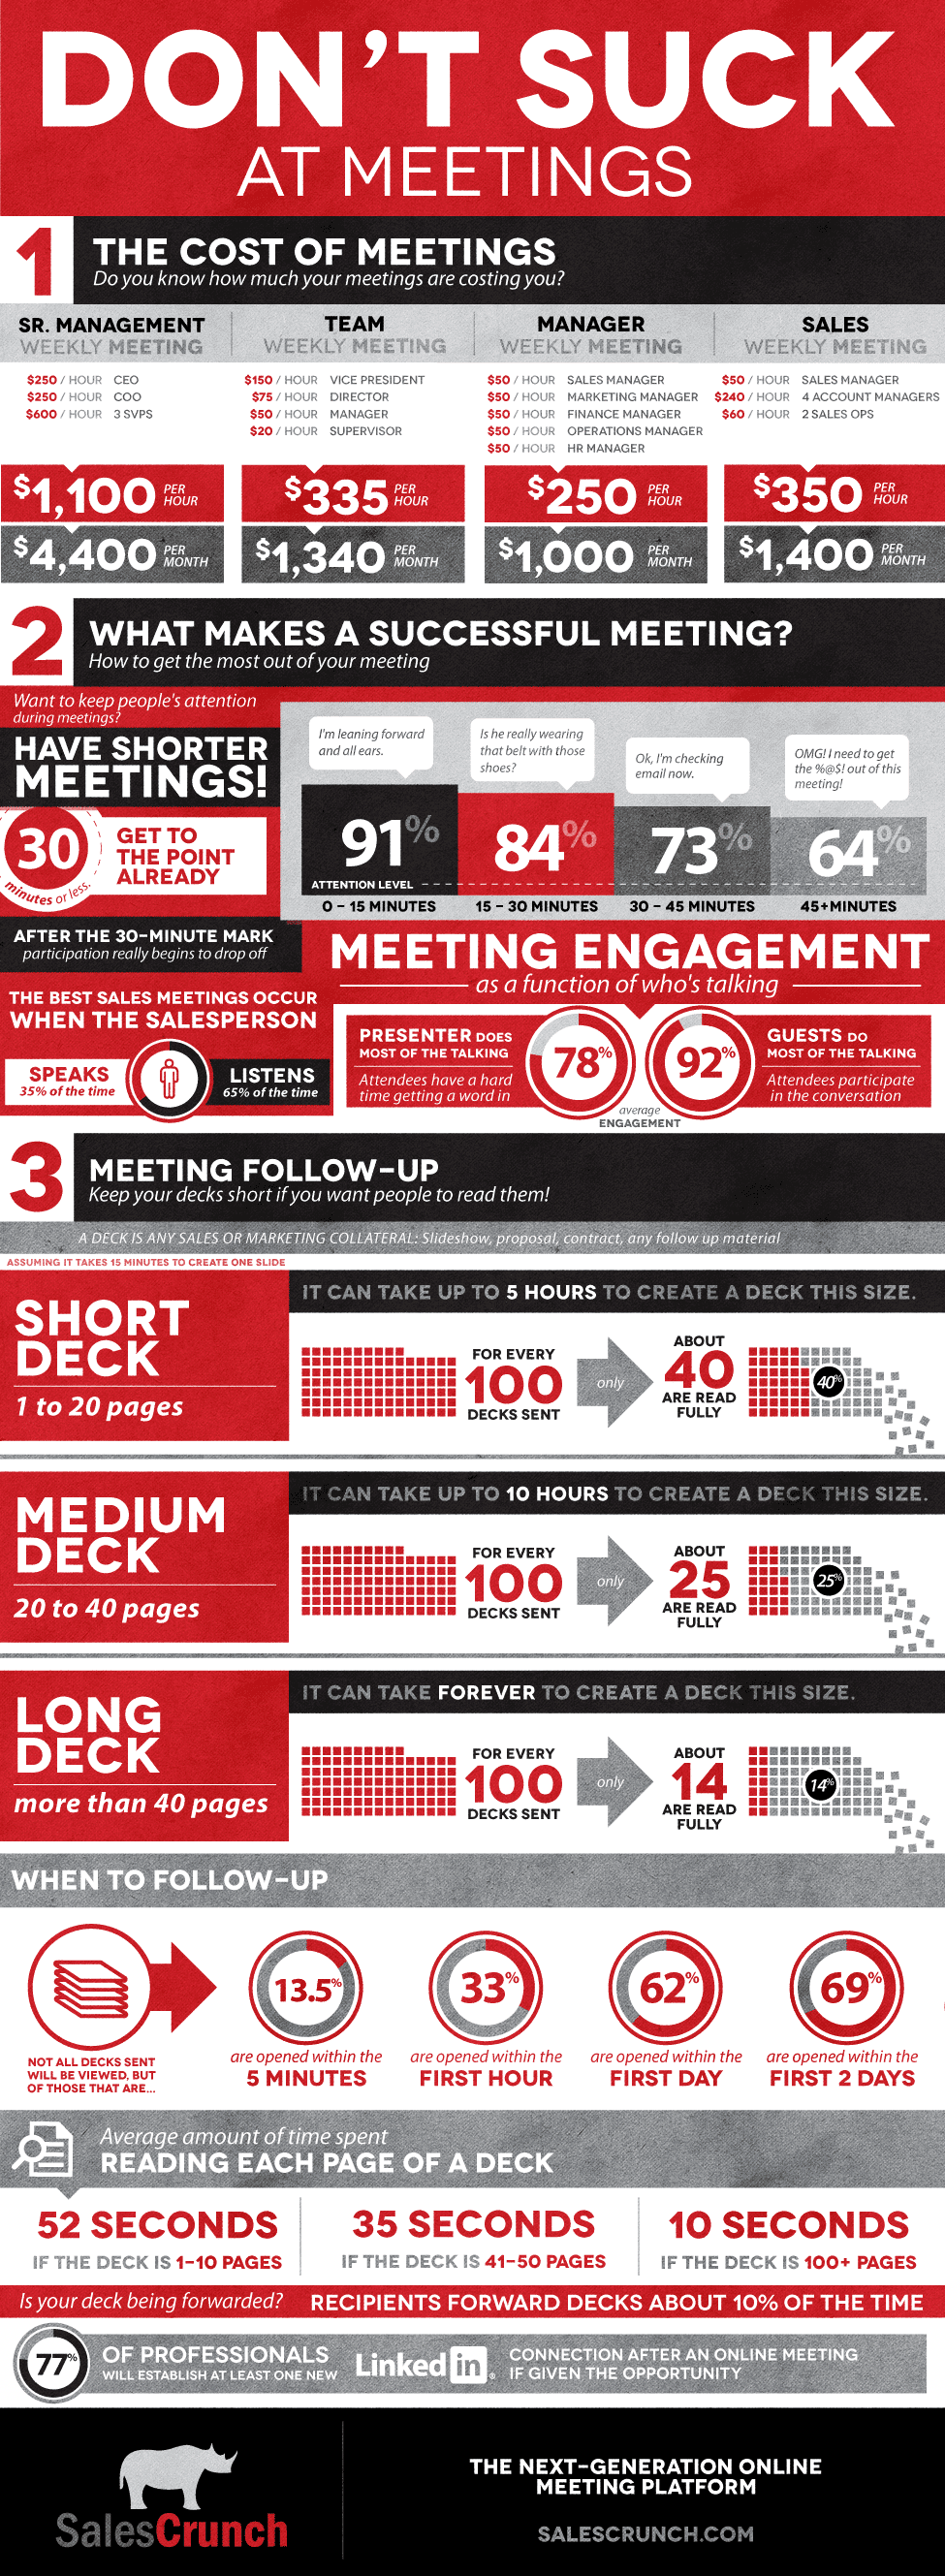 Don't Suck At Meetings: The Ultimate Guide [Infographic]